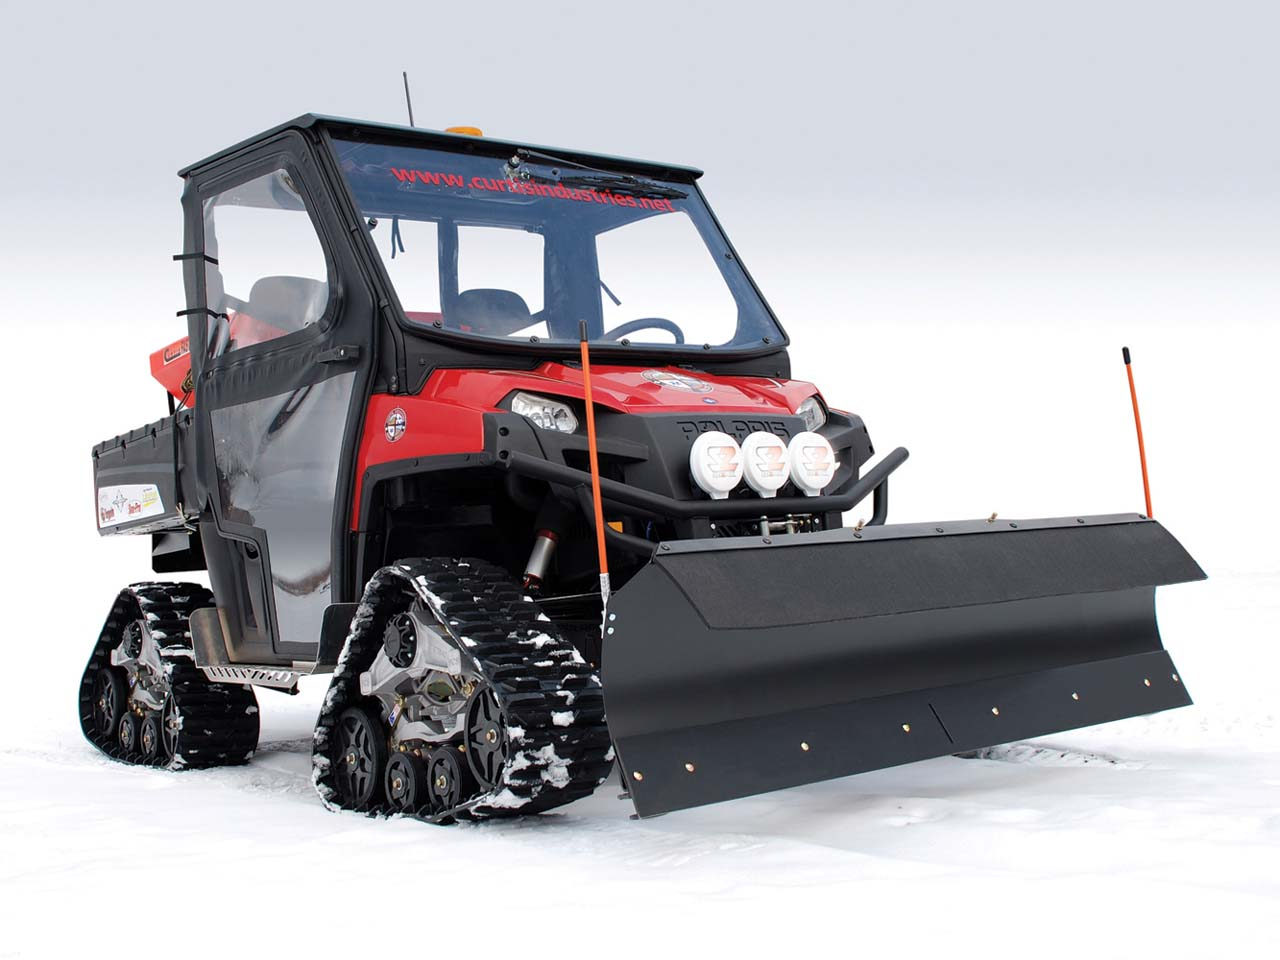 Curtis Introduces New Soft Side Cab For Polaris Ranger 400